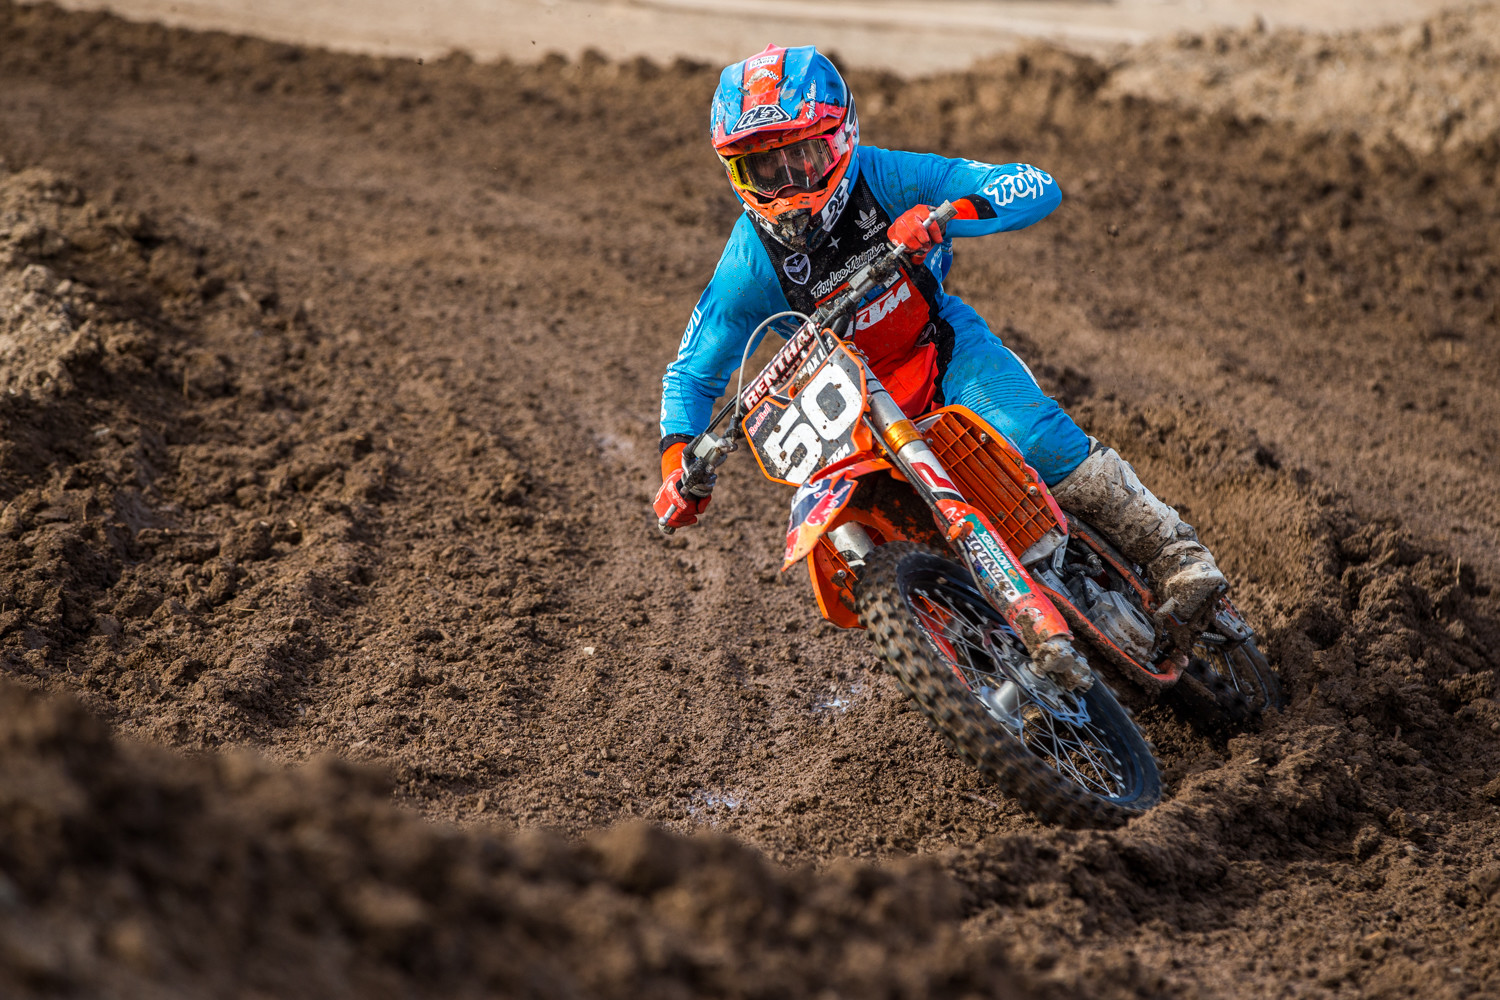 Max Lee - Gallery: 2017 AMA Arizona Open Amateur National - Friday - Motocross Pictures - Vital MX